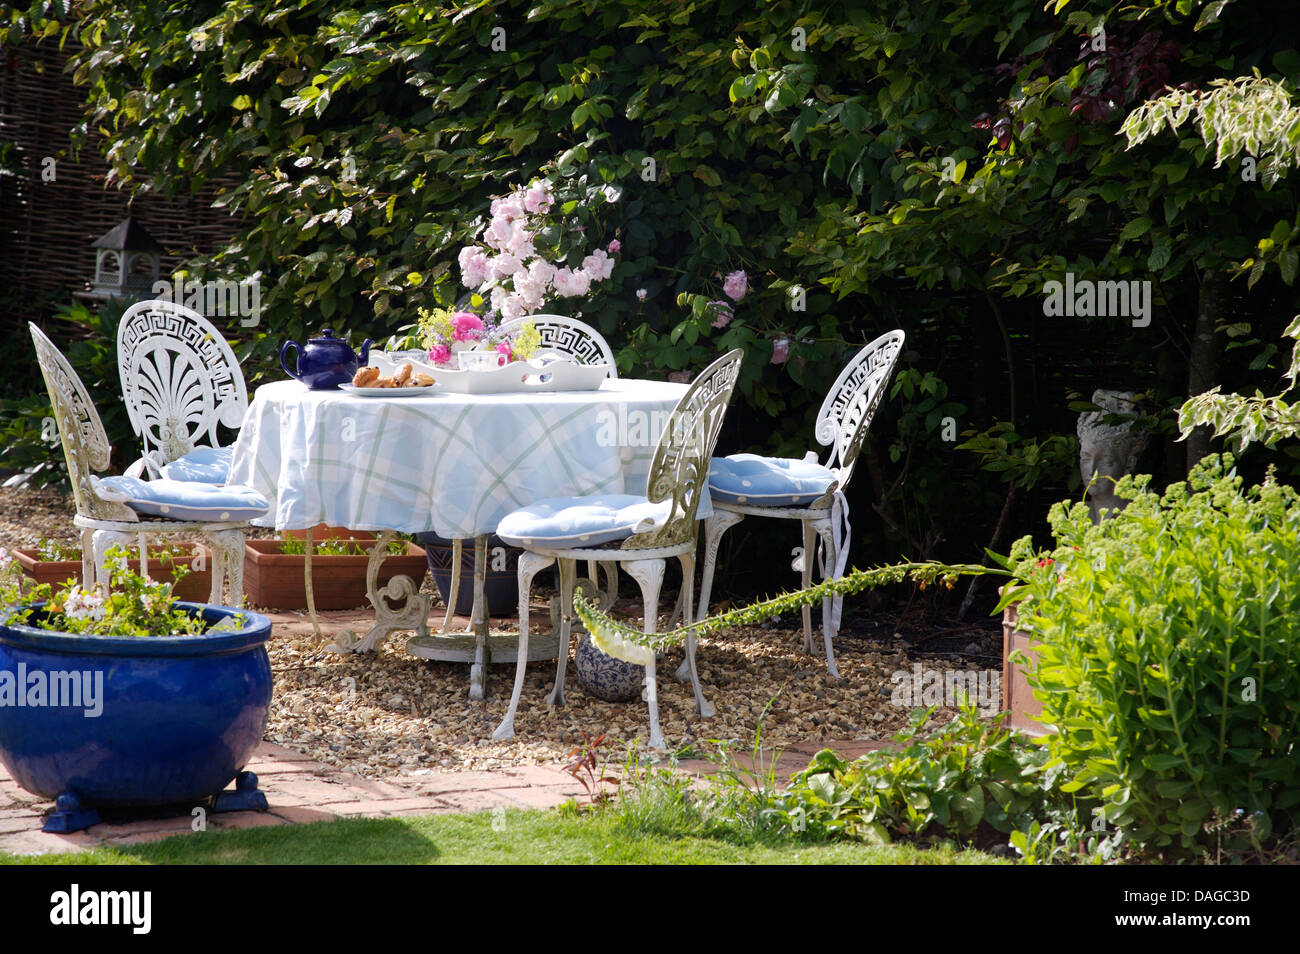 White Wrought Iron Chairs Part - 41: Stock Photo - White Wrought Iron Chairs And Table With Checked Cloth Set  For Tea In Country Garden In Summer